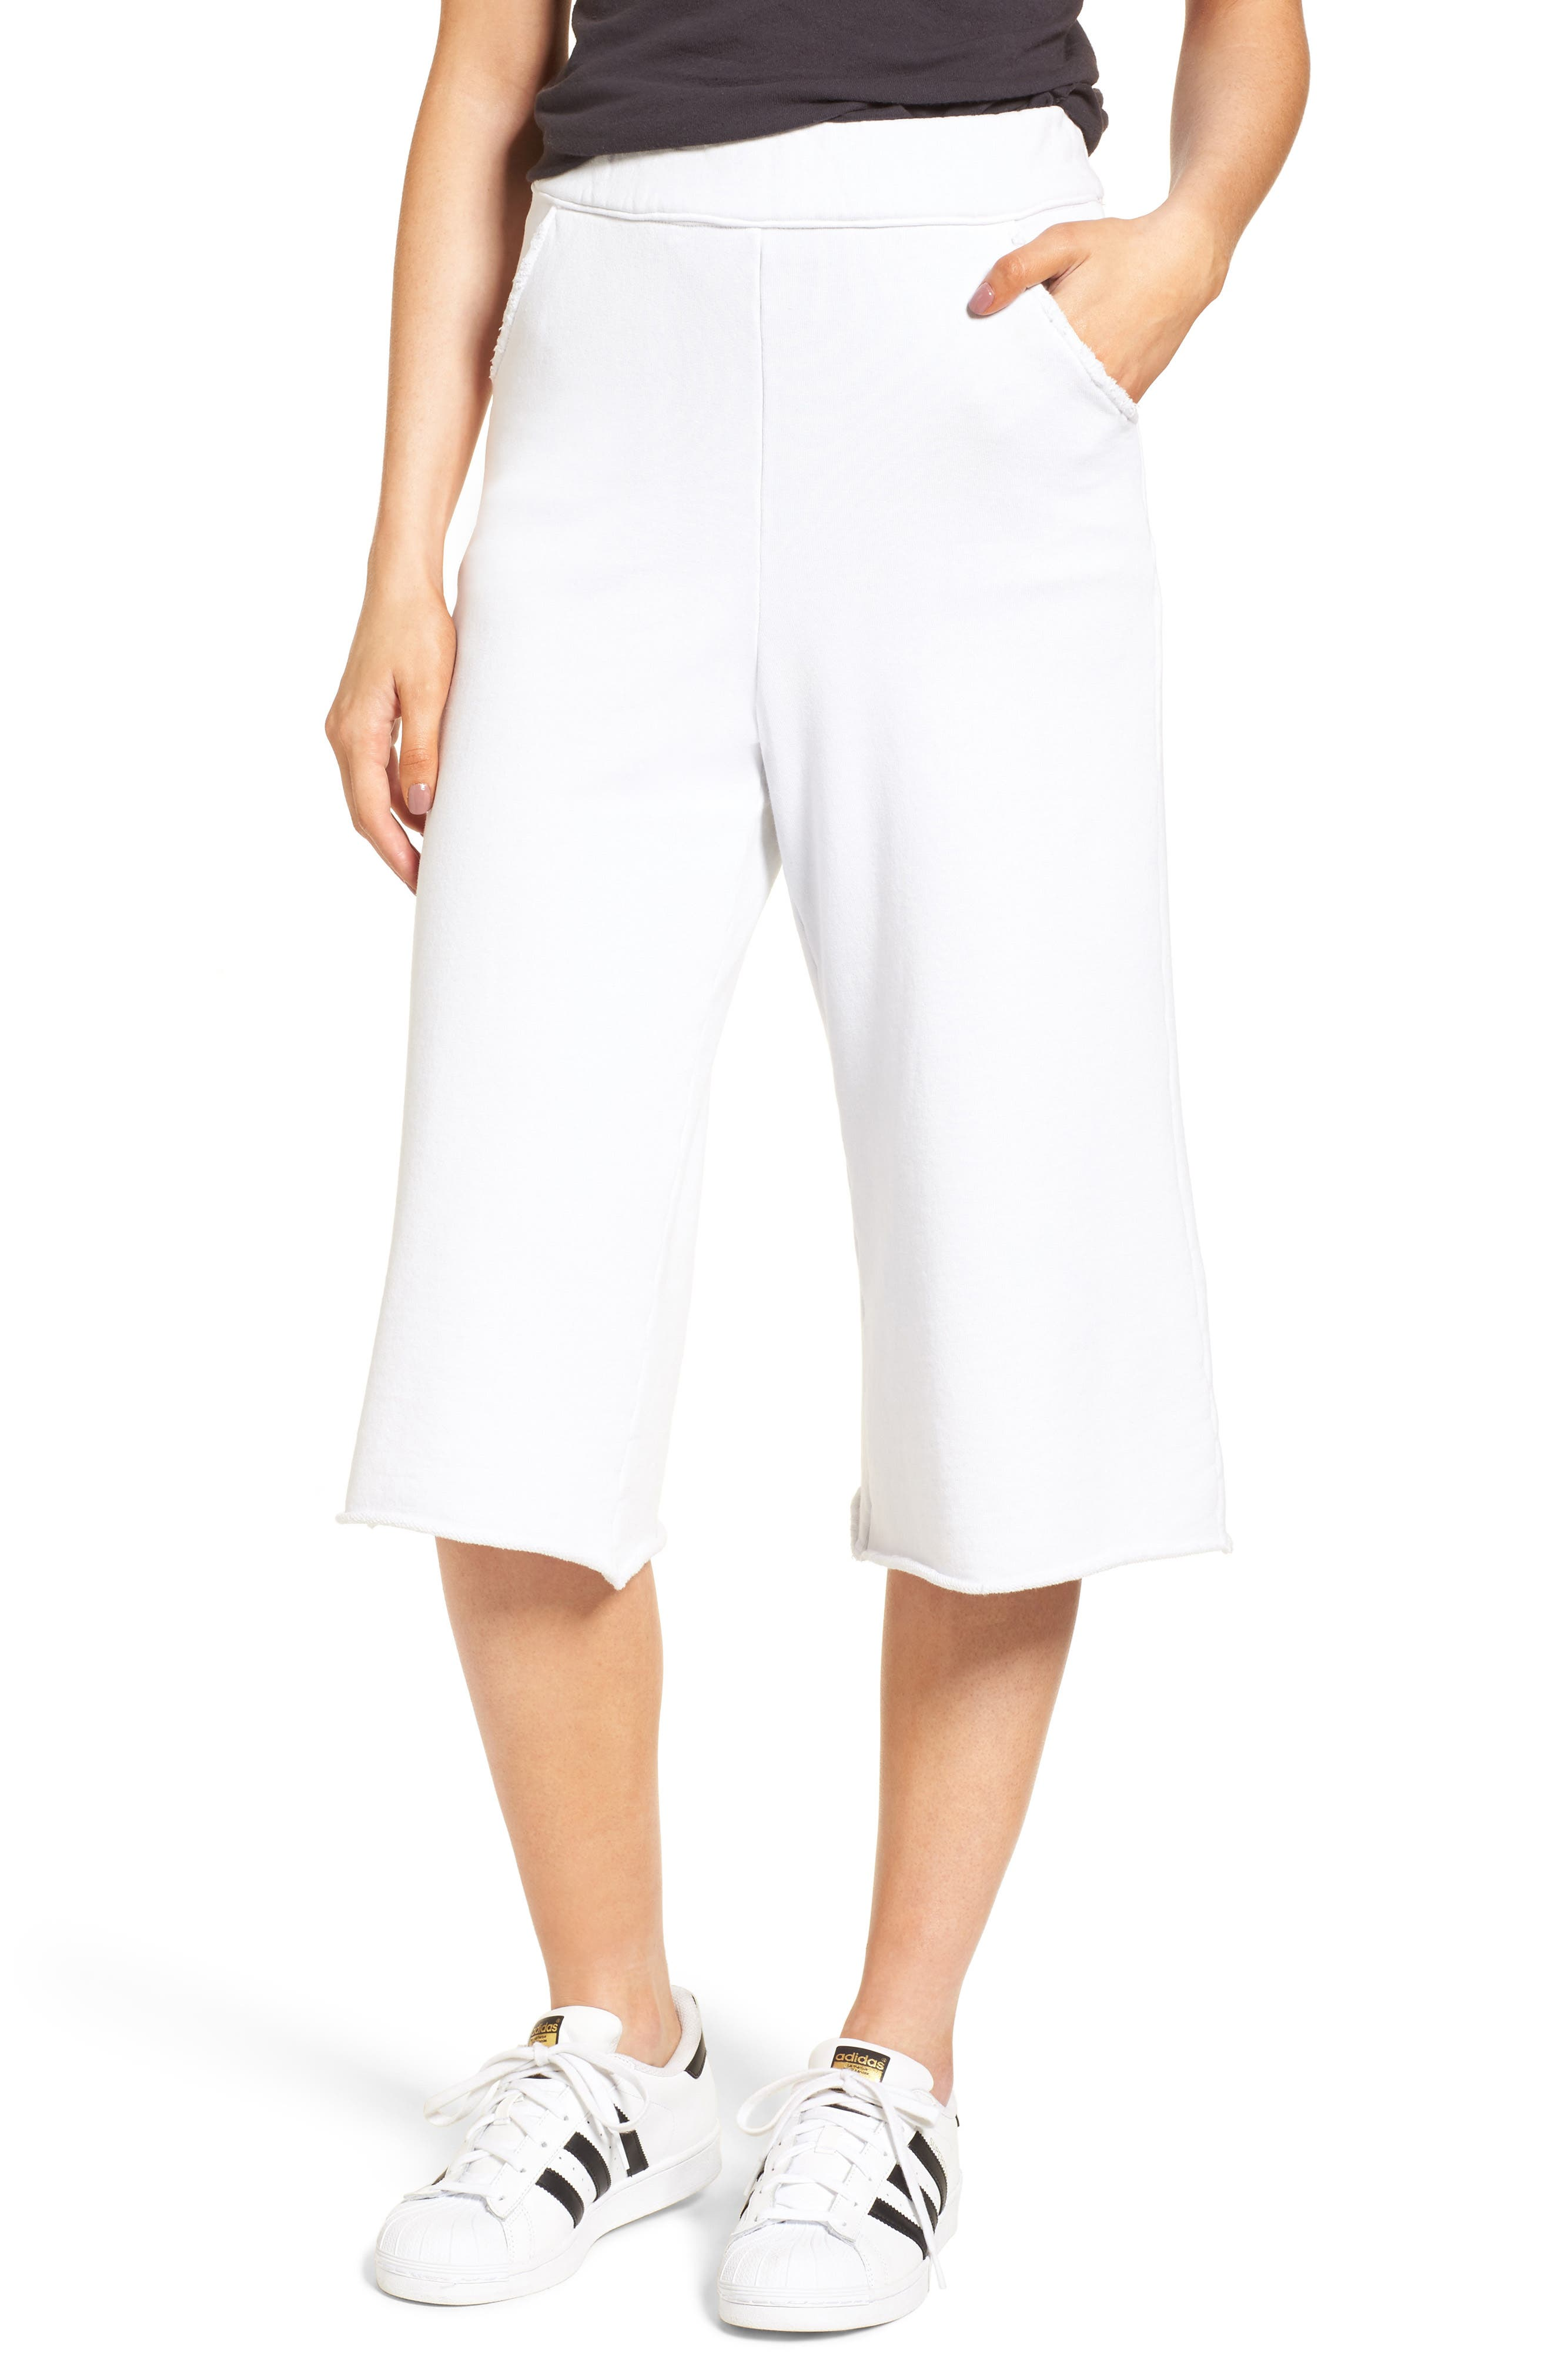 Alternate Image 1 Selected - Frank & Eileen Tee Lab Knit Gauchos